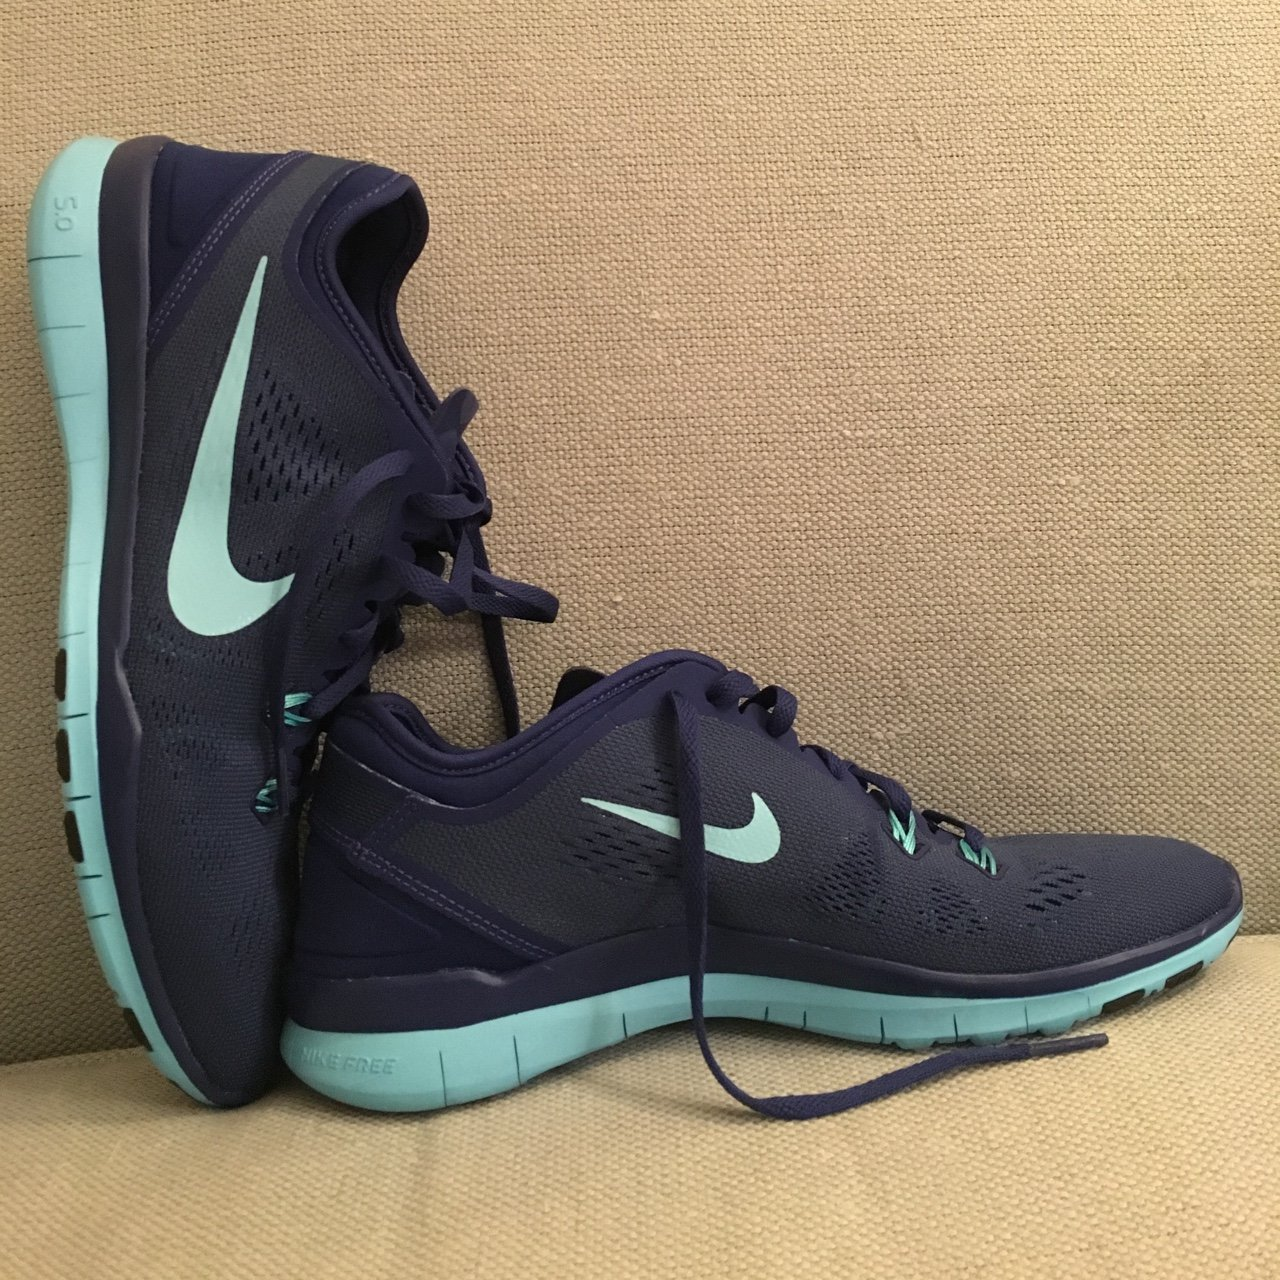 02430bcaebb8 Nike ID shoes never been worn navy blue with light blue They - Depop nike id